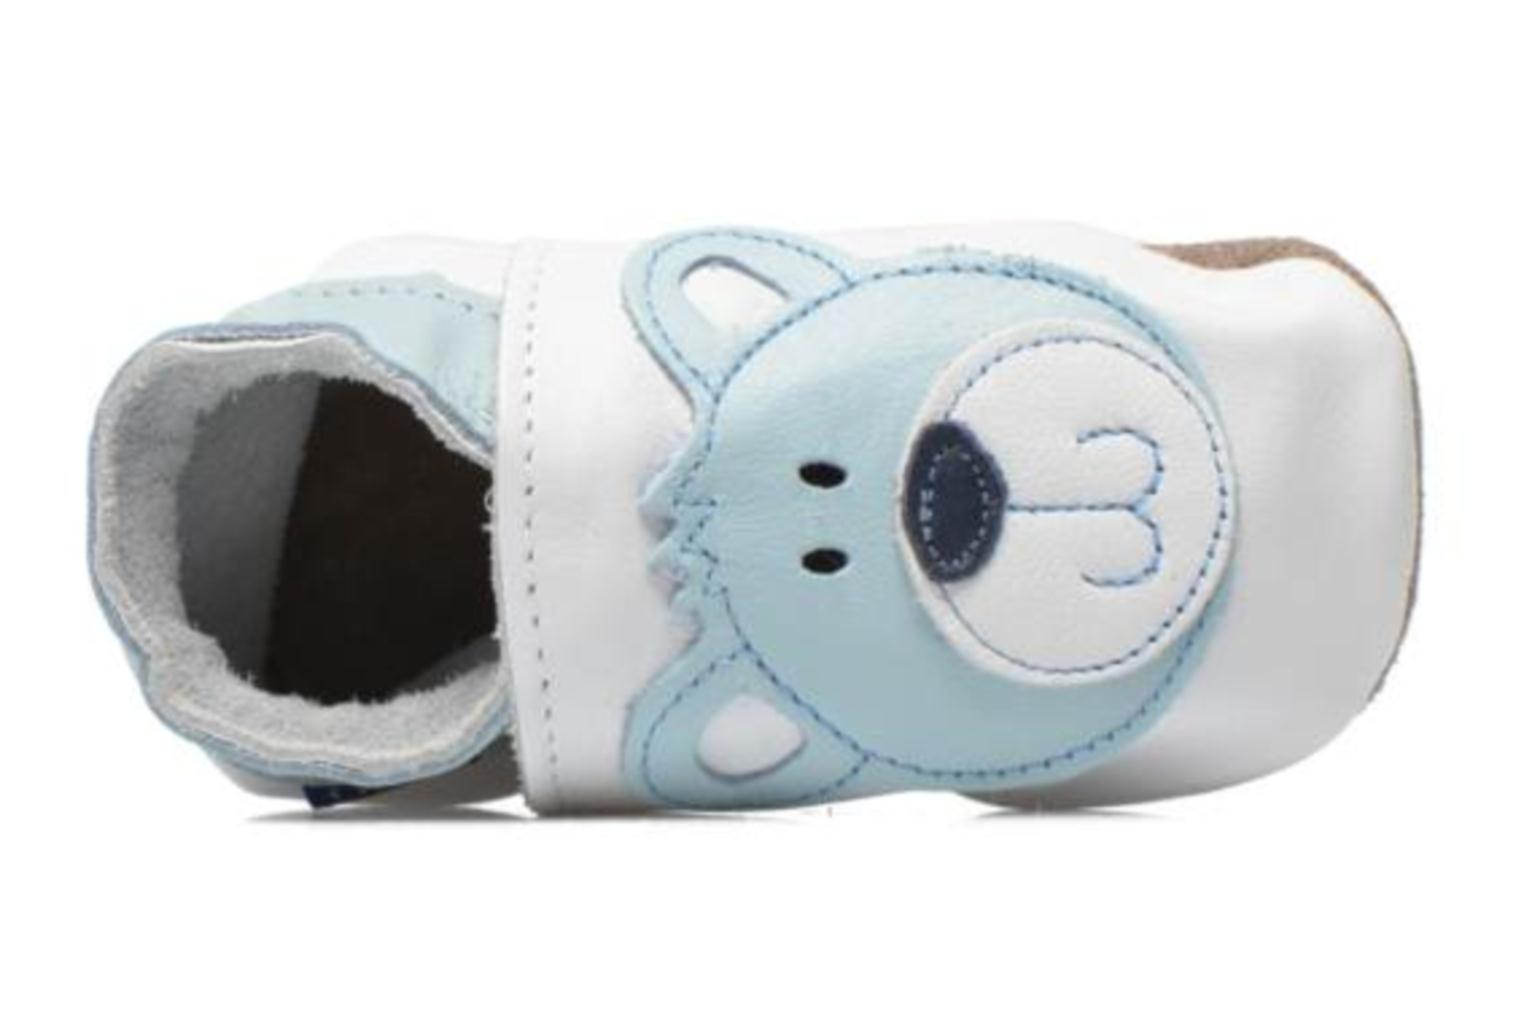 Teddy Blue Blanc/bleu